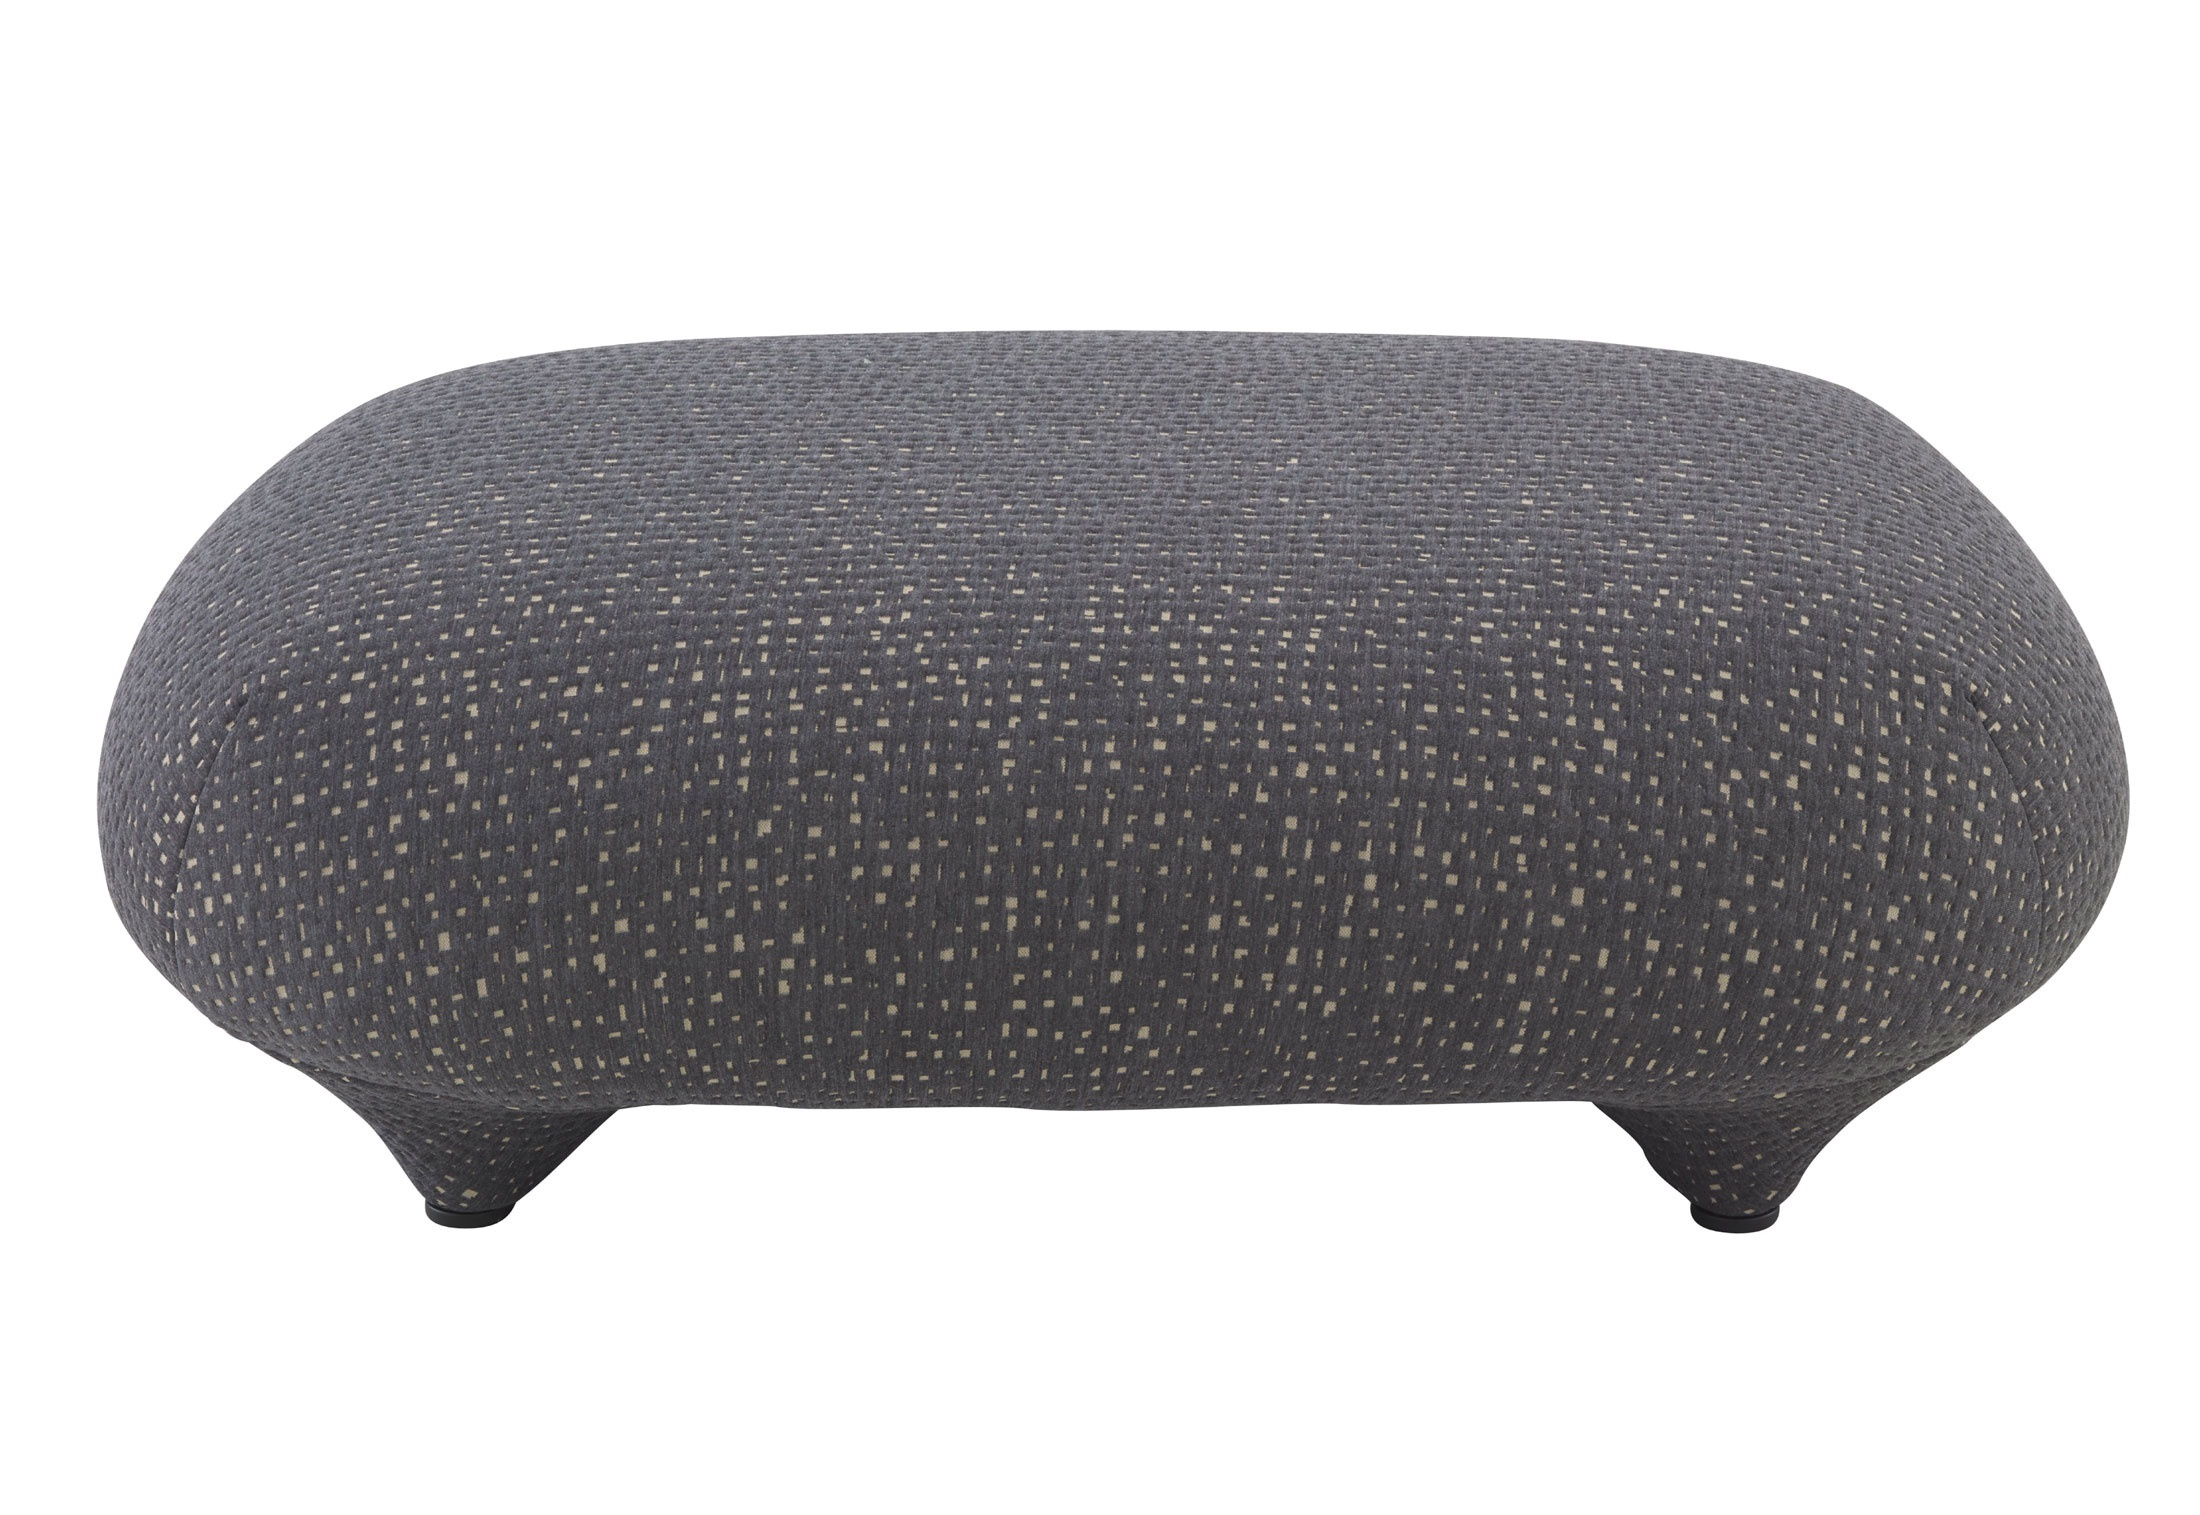 Pouf in fabric PLOUM, Ligne Roset - Luxury furniture MR